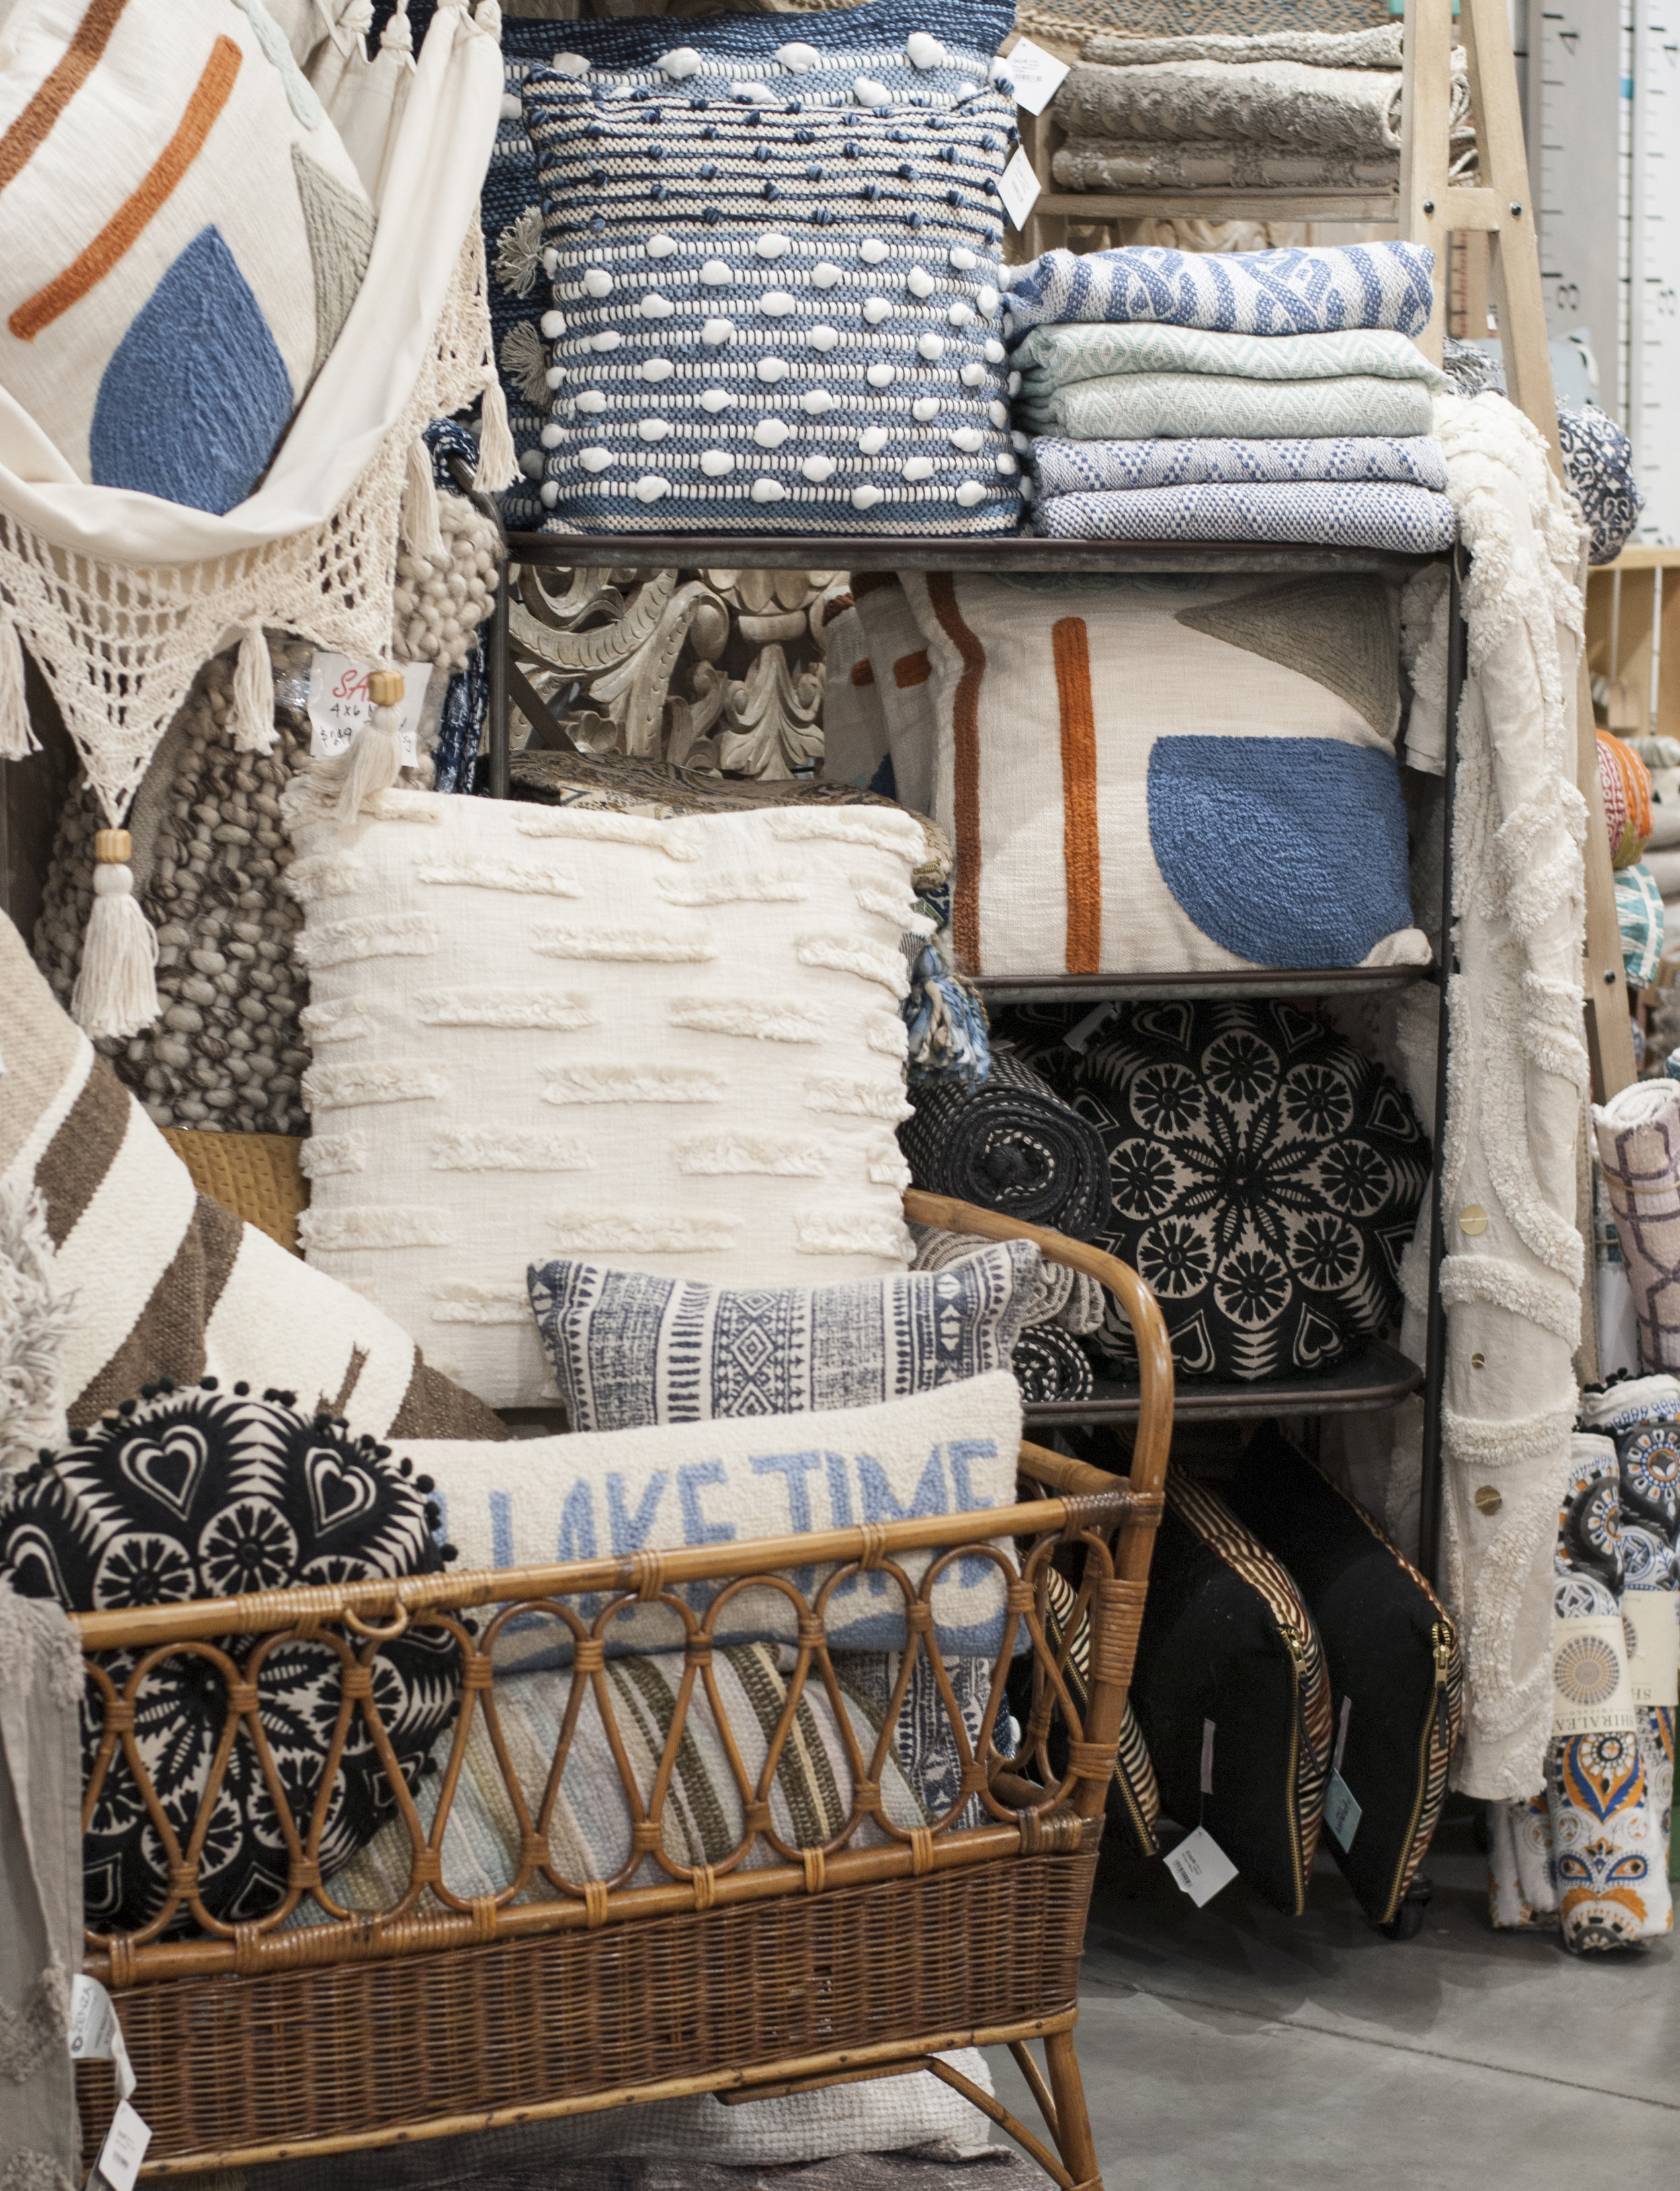 Globally Sourced Cushions + Blankets